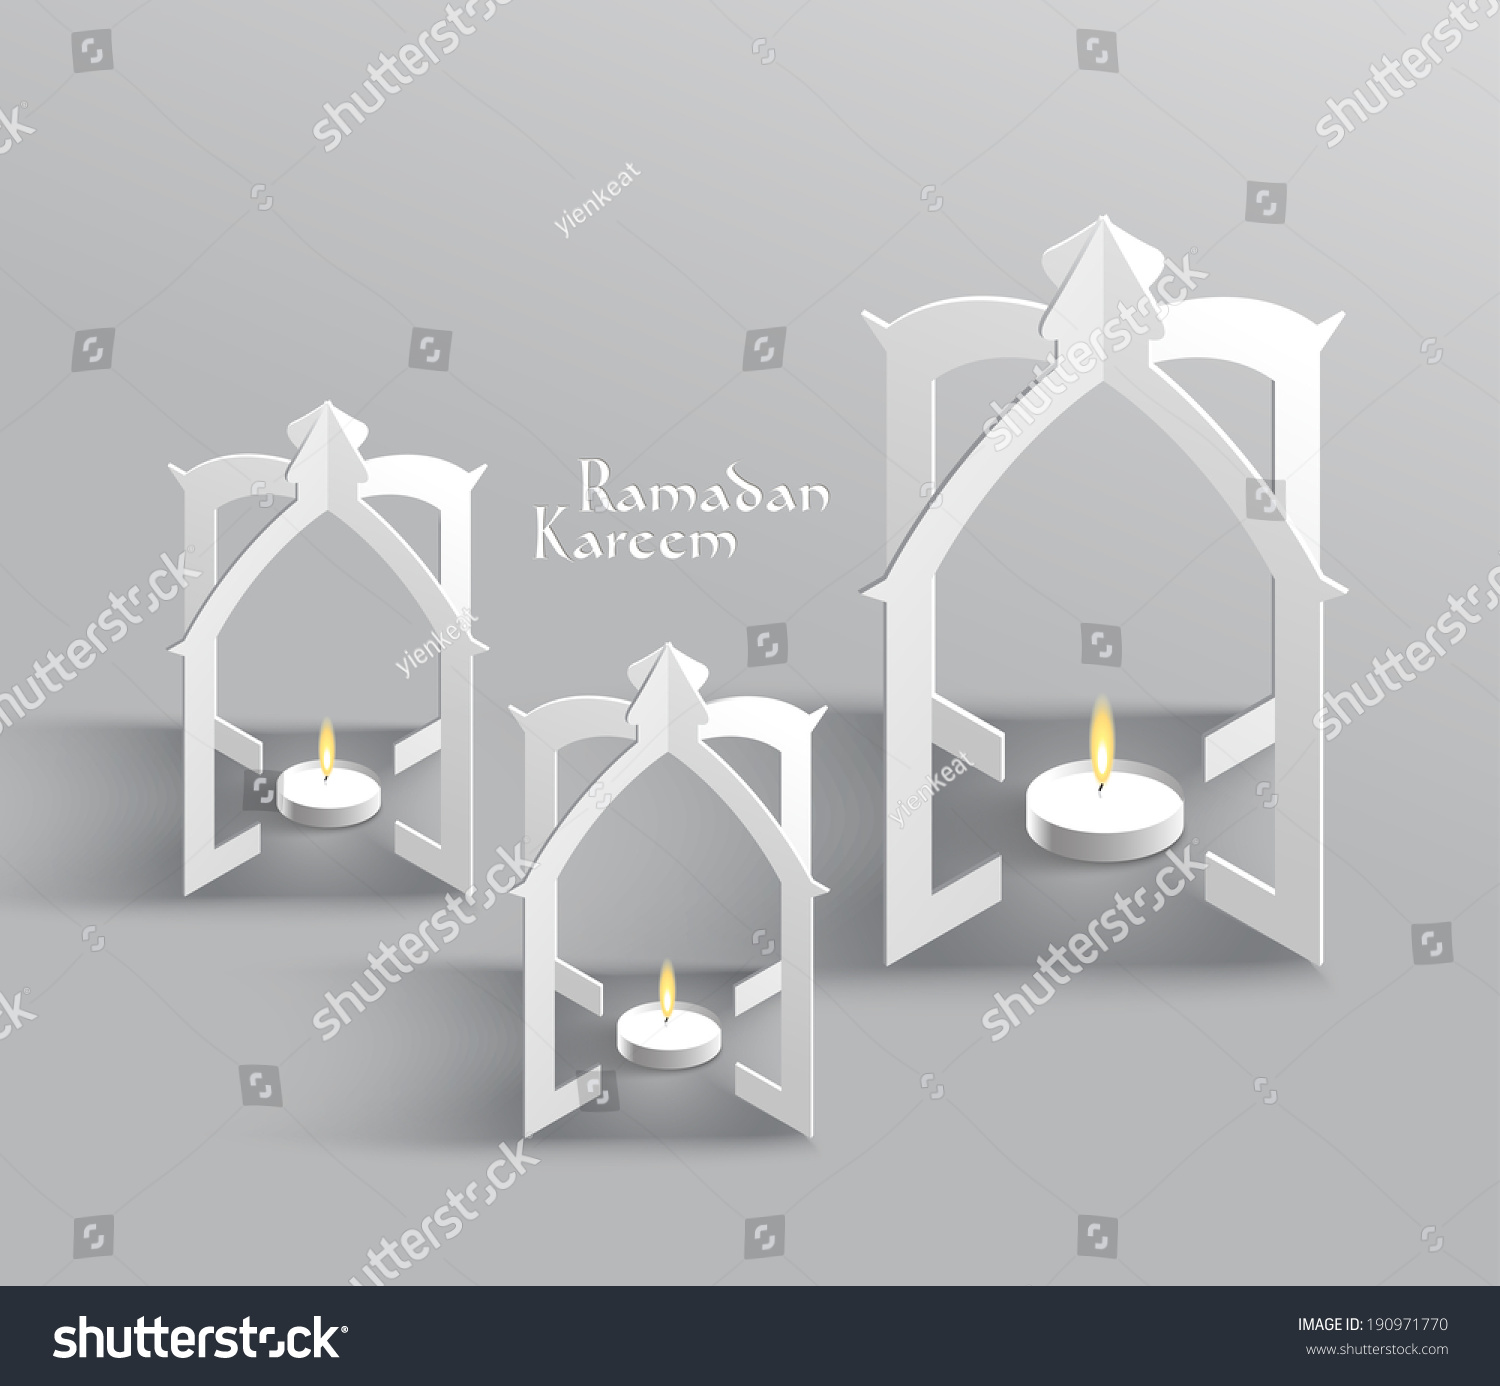 Vector 3D Muslim Paper Sculpture Oil Lamp Translation Ramadan K